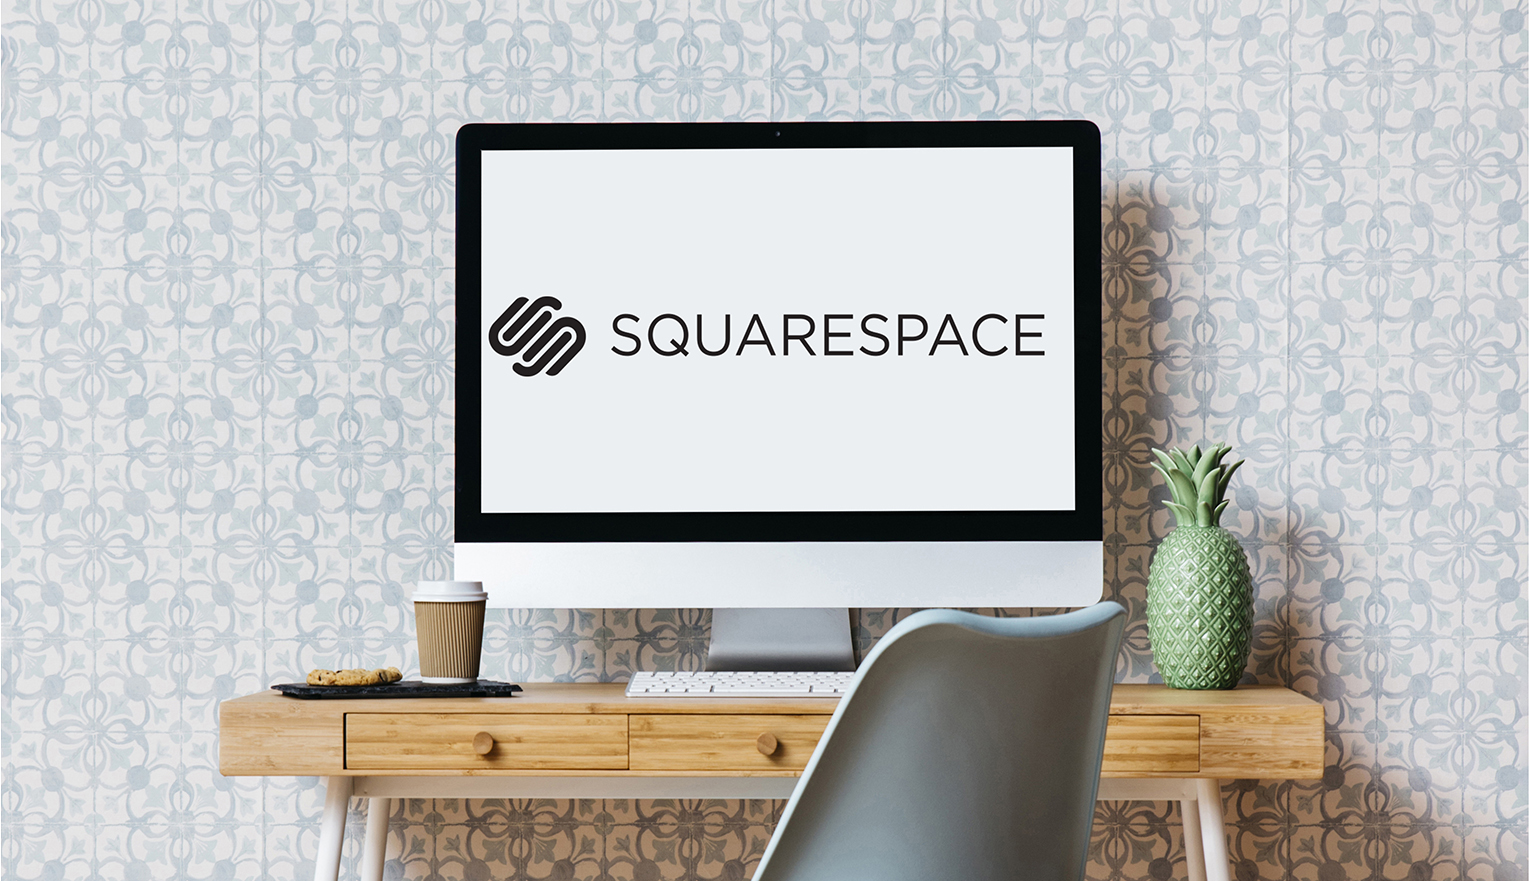 Squarespace is focused on creating blogs and portfolios